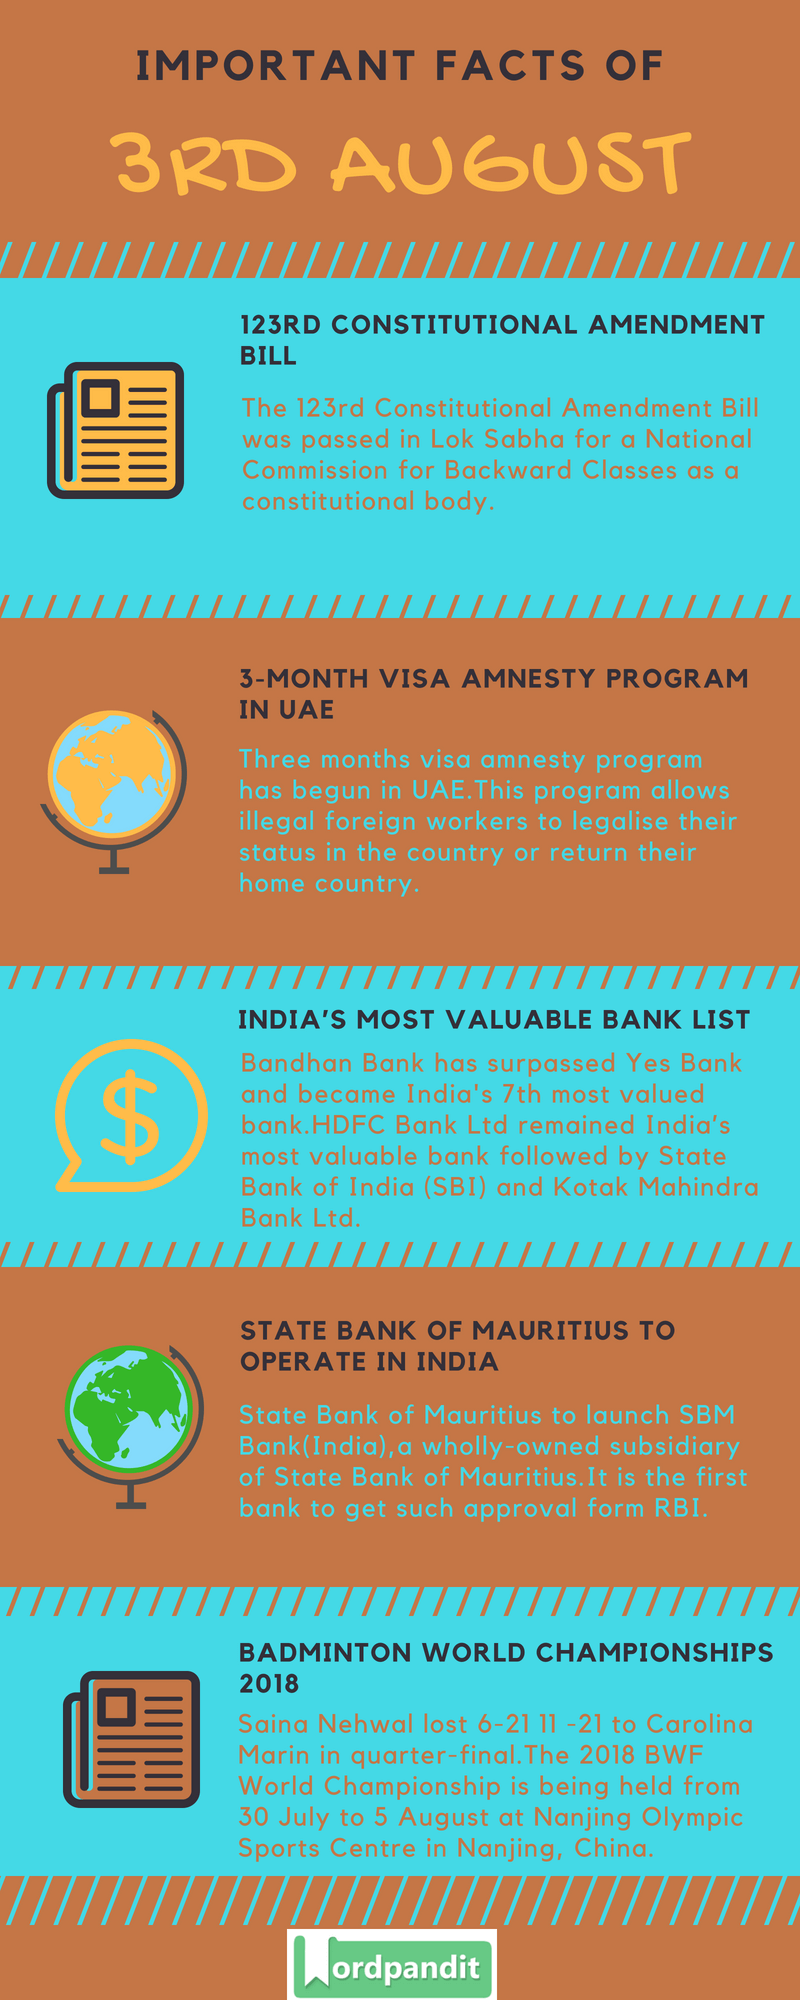 Daily Current Affairs 3 August 2018 Current Affairs Quiz August 3 2018 Current Affairs Infographic